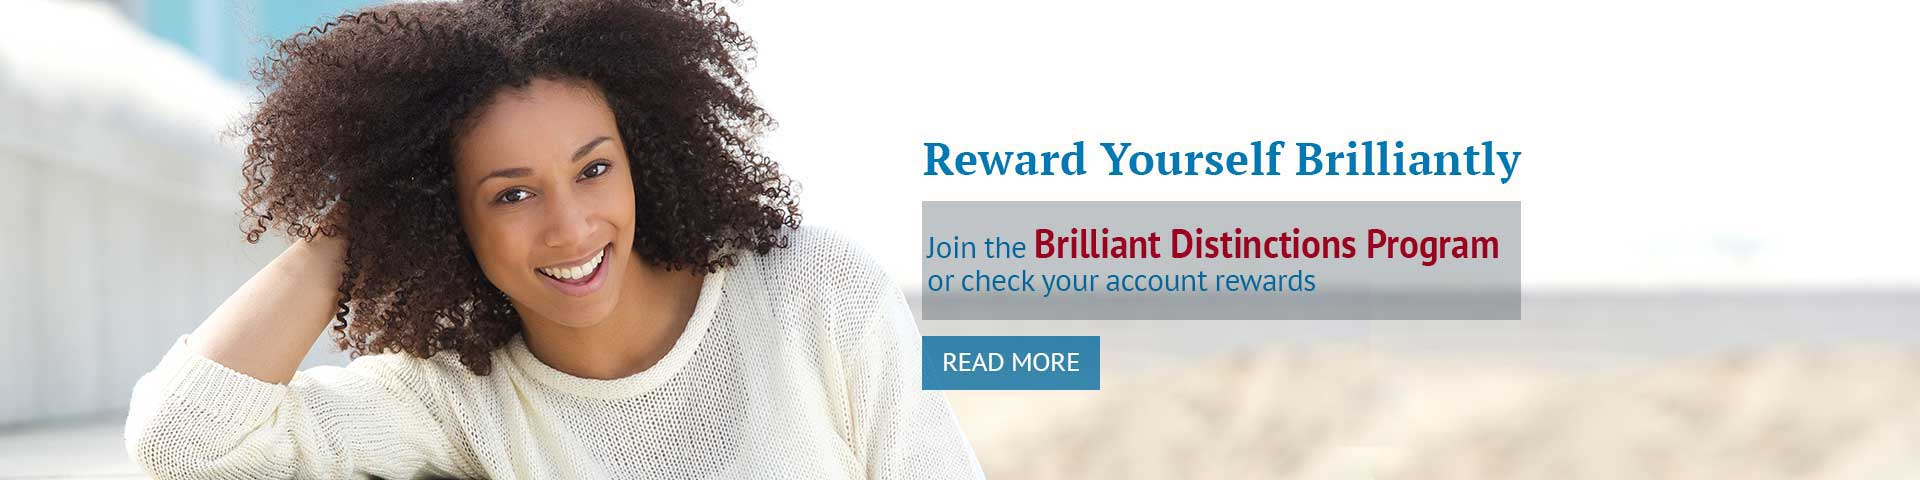 Dermatologist La Mesa CA - Join the Brilliant Distinctions Program